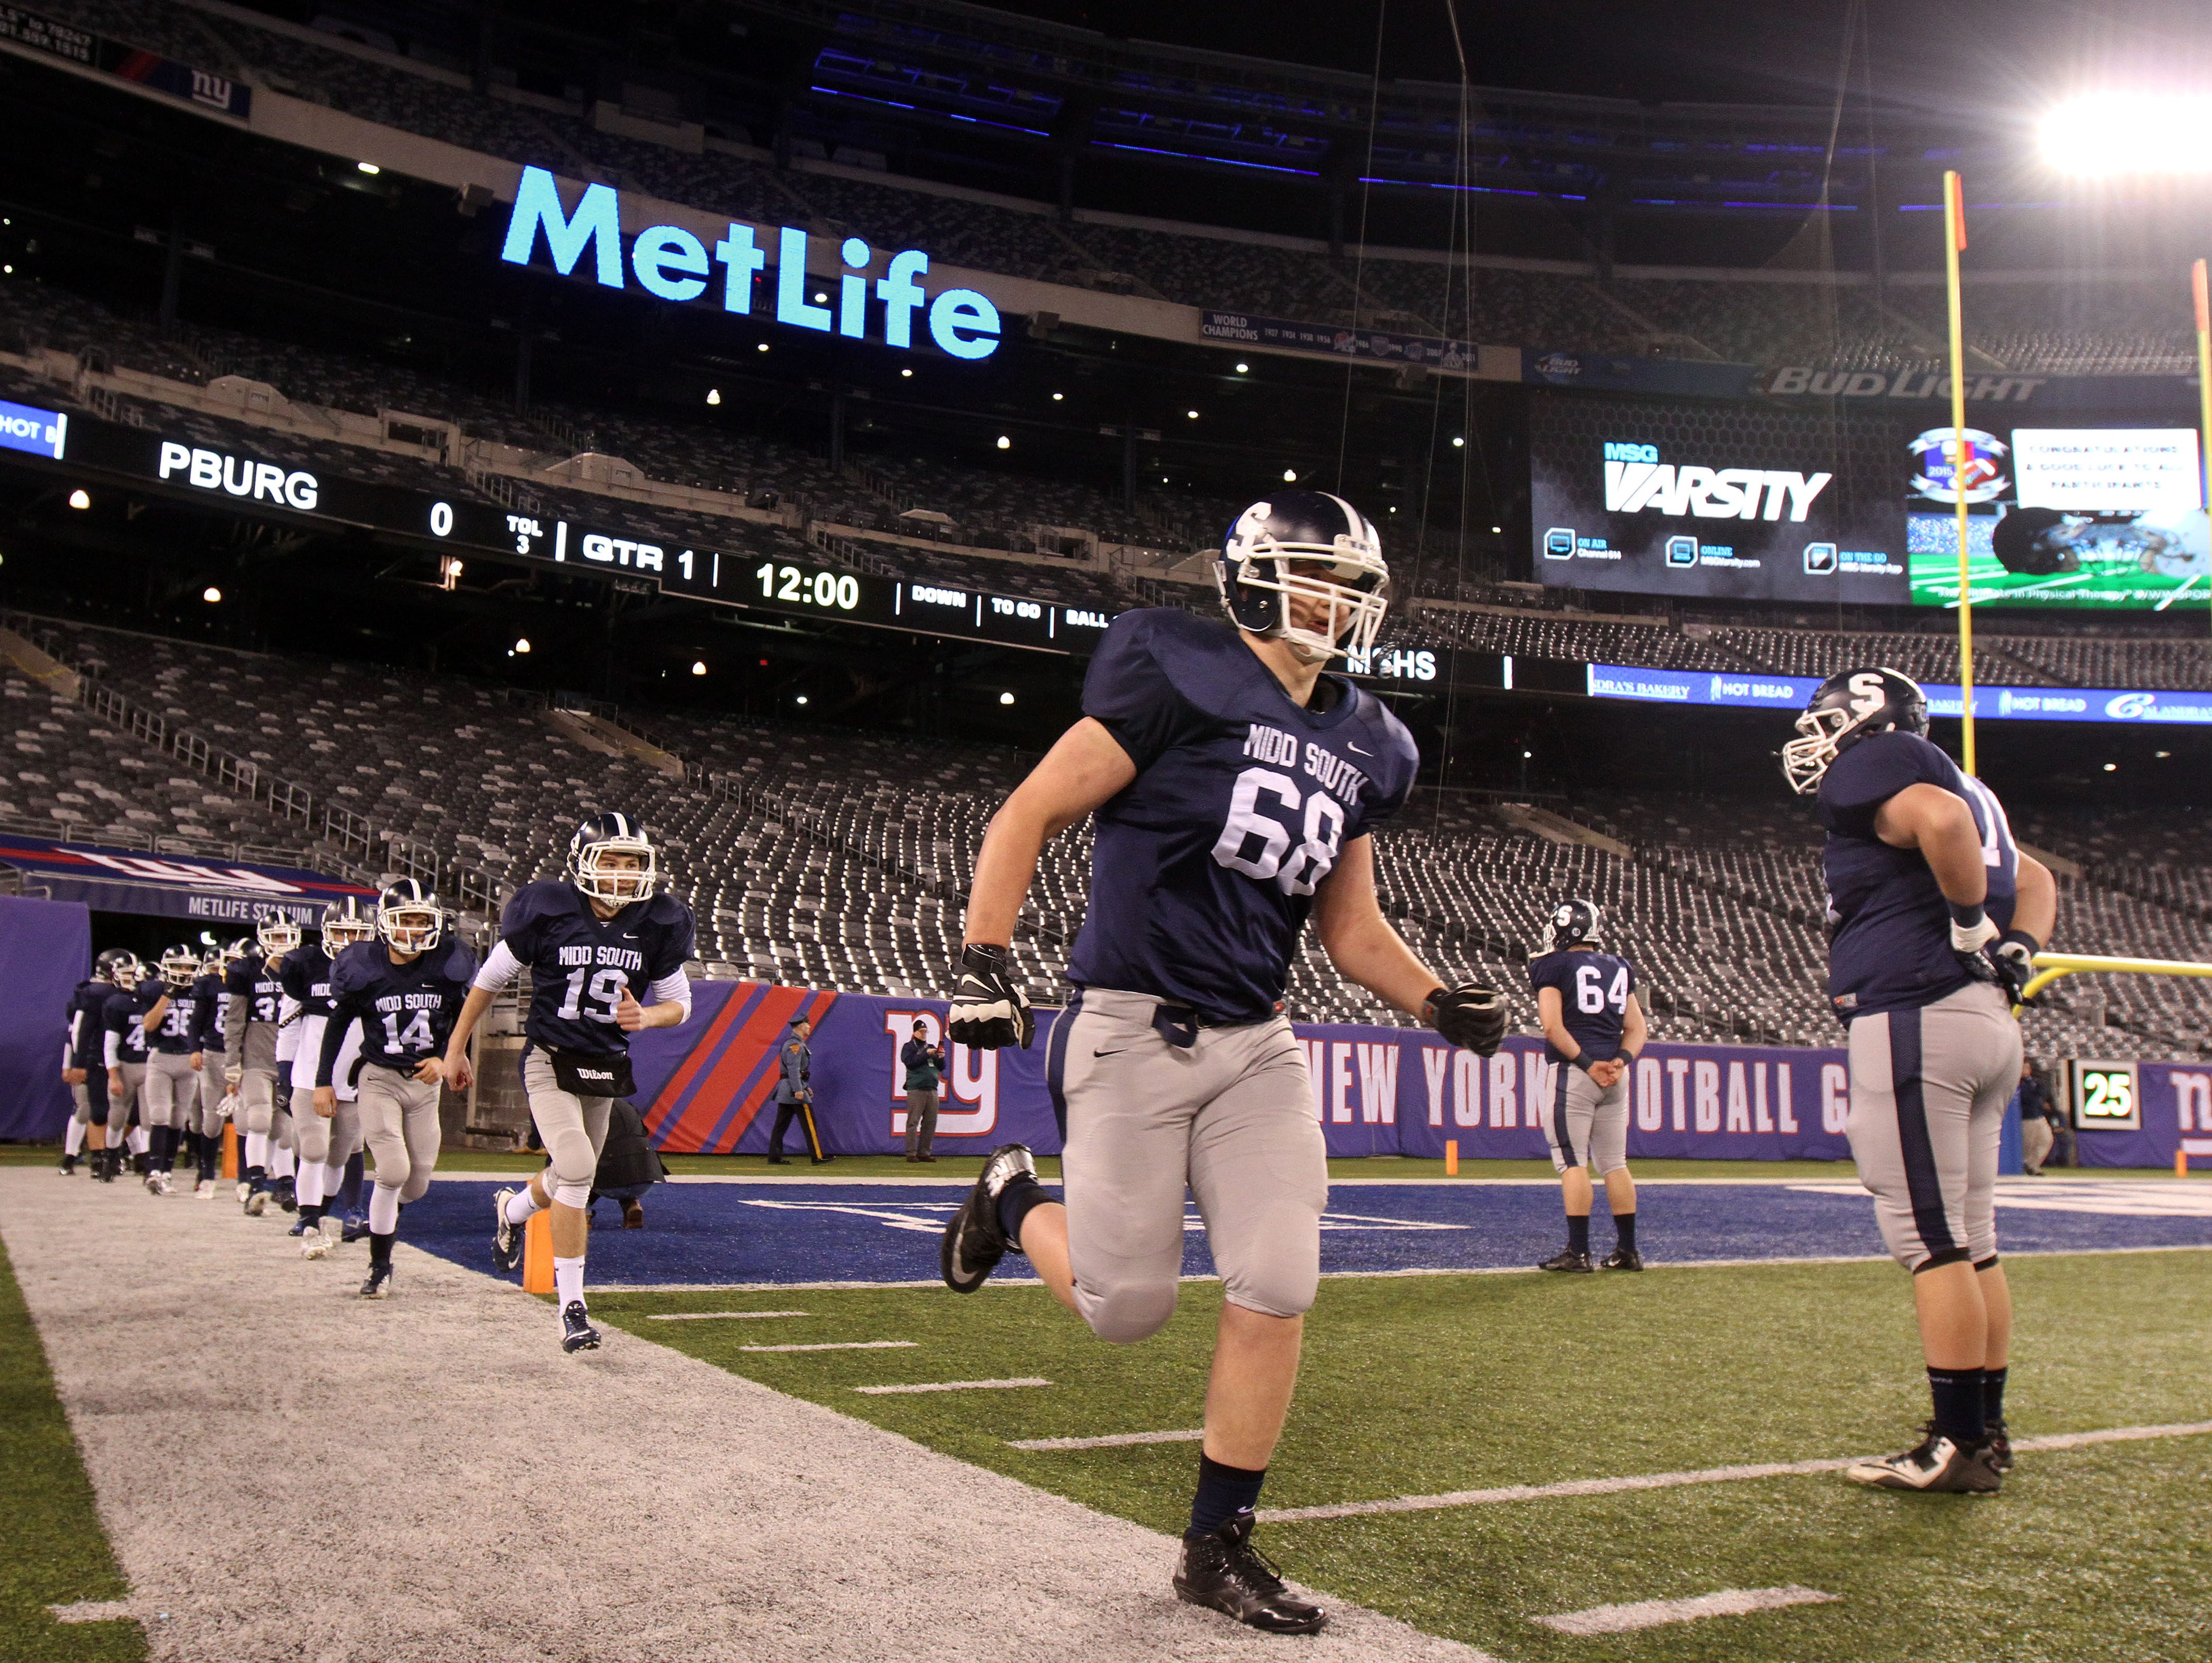 Middletown South warms up before the Phillipsburg High School vs Middletown South High School during the North 2 Group IV game of the 2015 NJSIAA/MetLife Stadium High School Football Championships at MetLife Stadium in East Rutherford, NJ Saturday December 5, 2015.